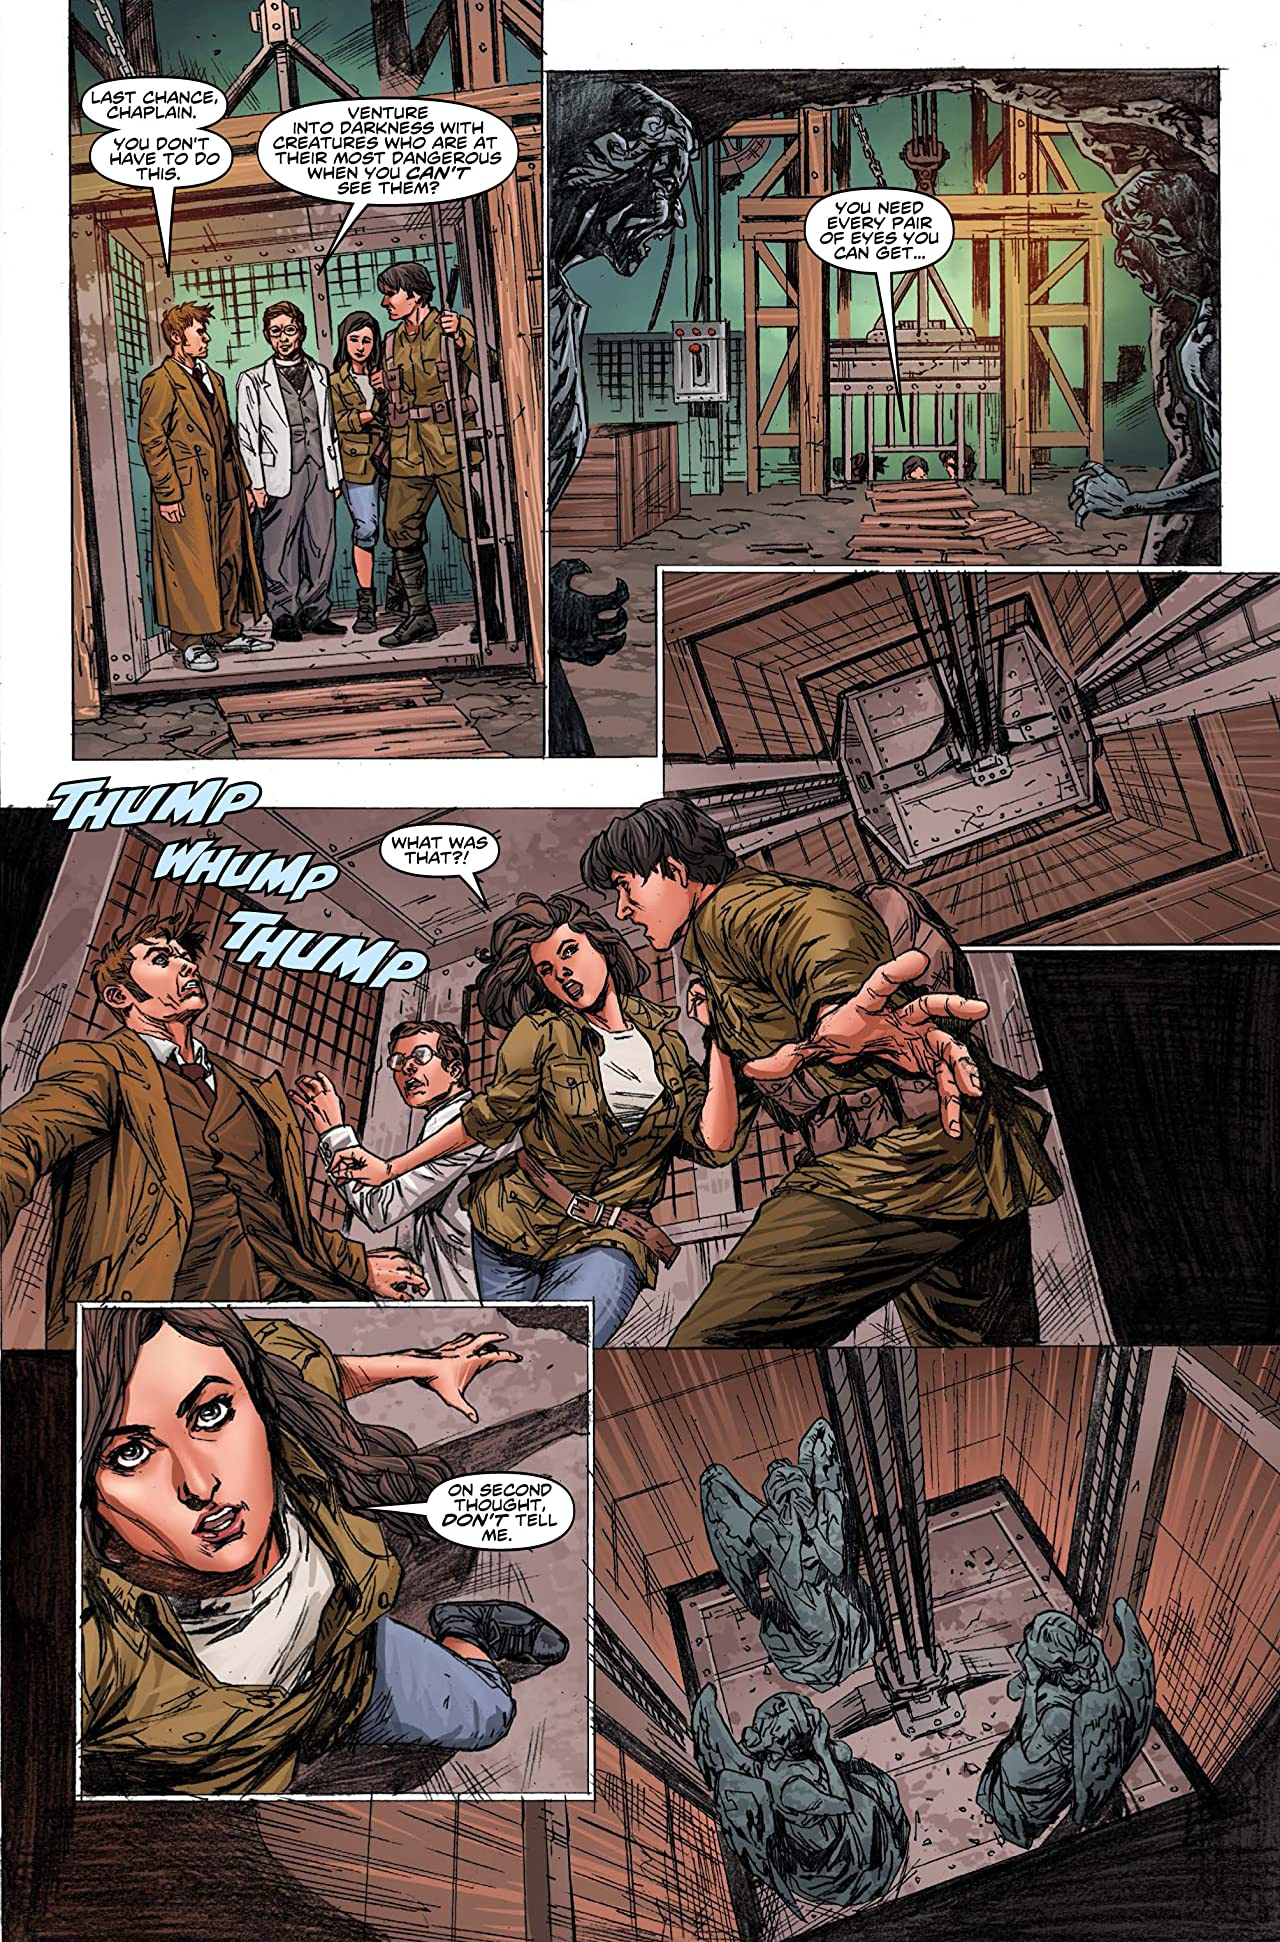 Doctor Who: The Tenth Doctor #9